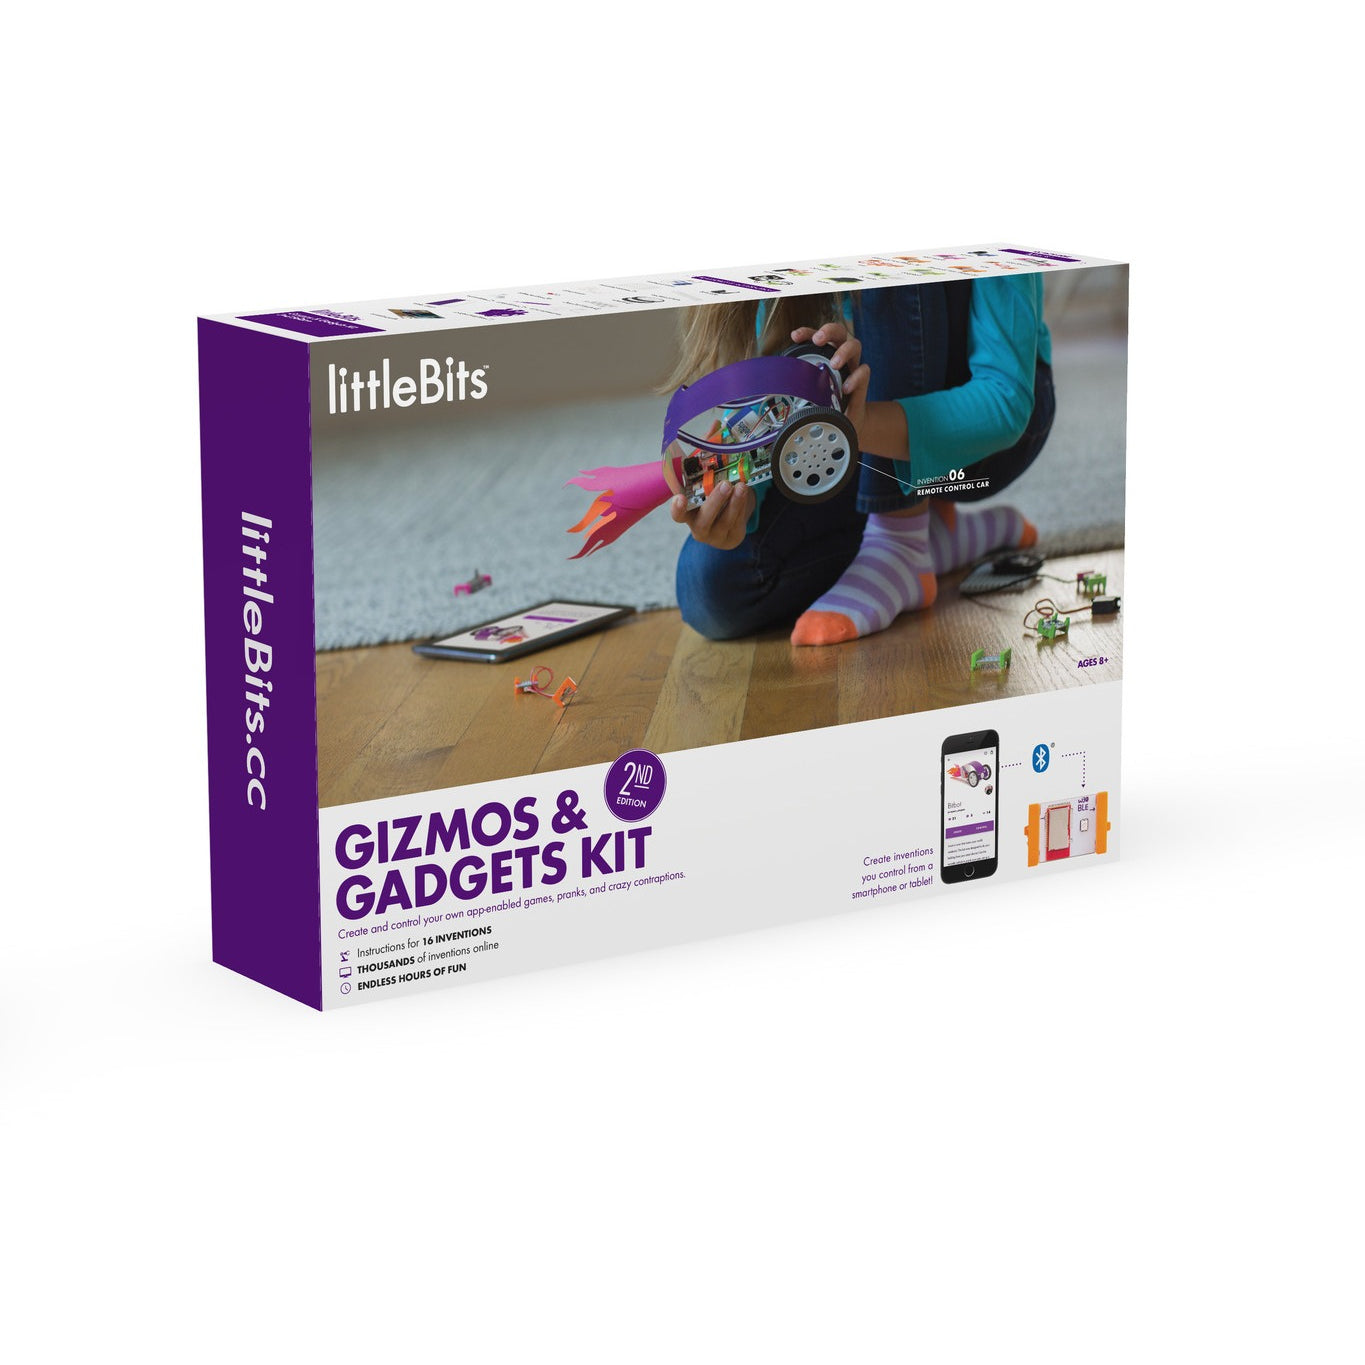 Littlebits Electronic Building Blocks Lets Kids And Adults Create